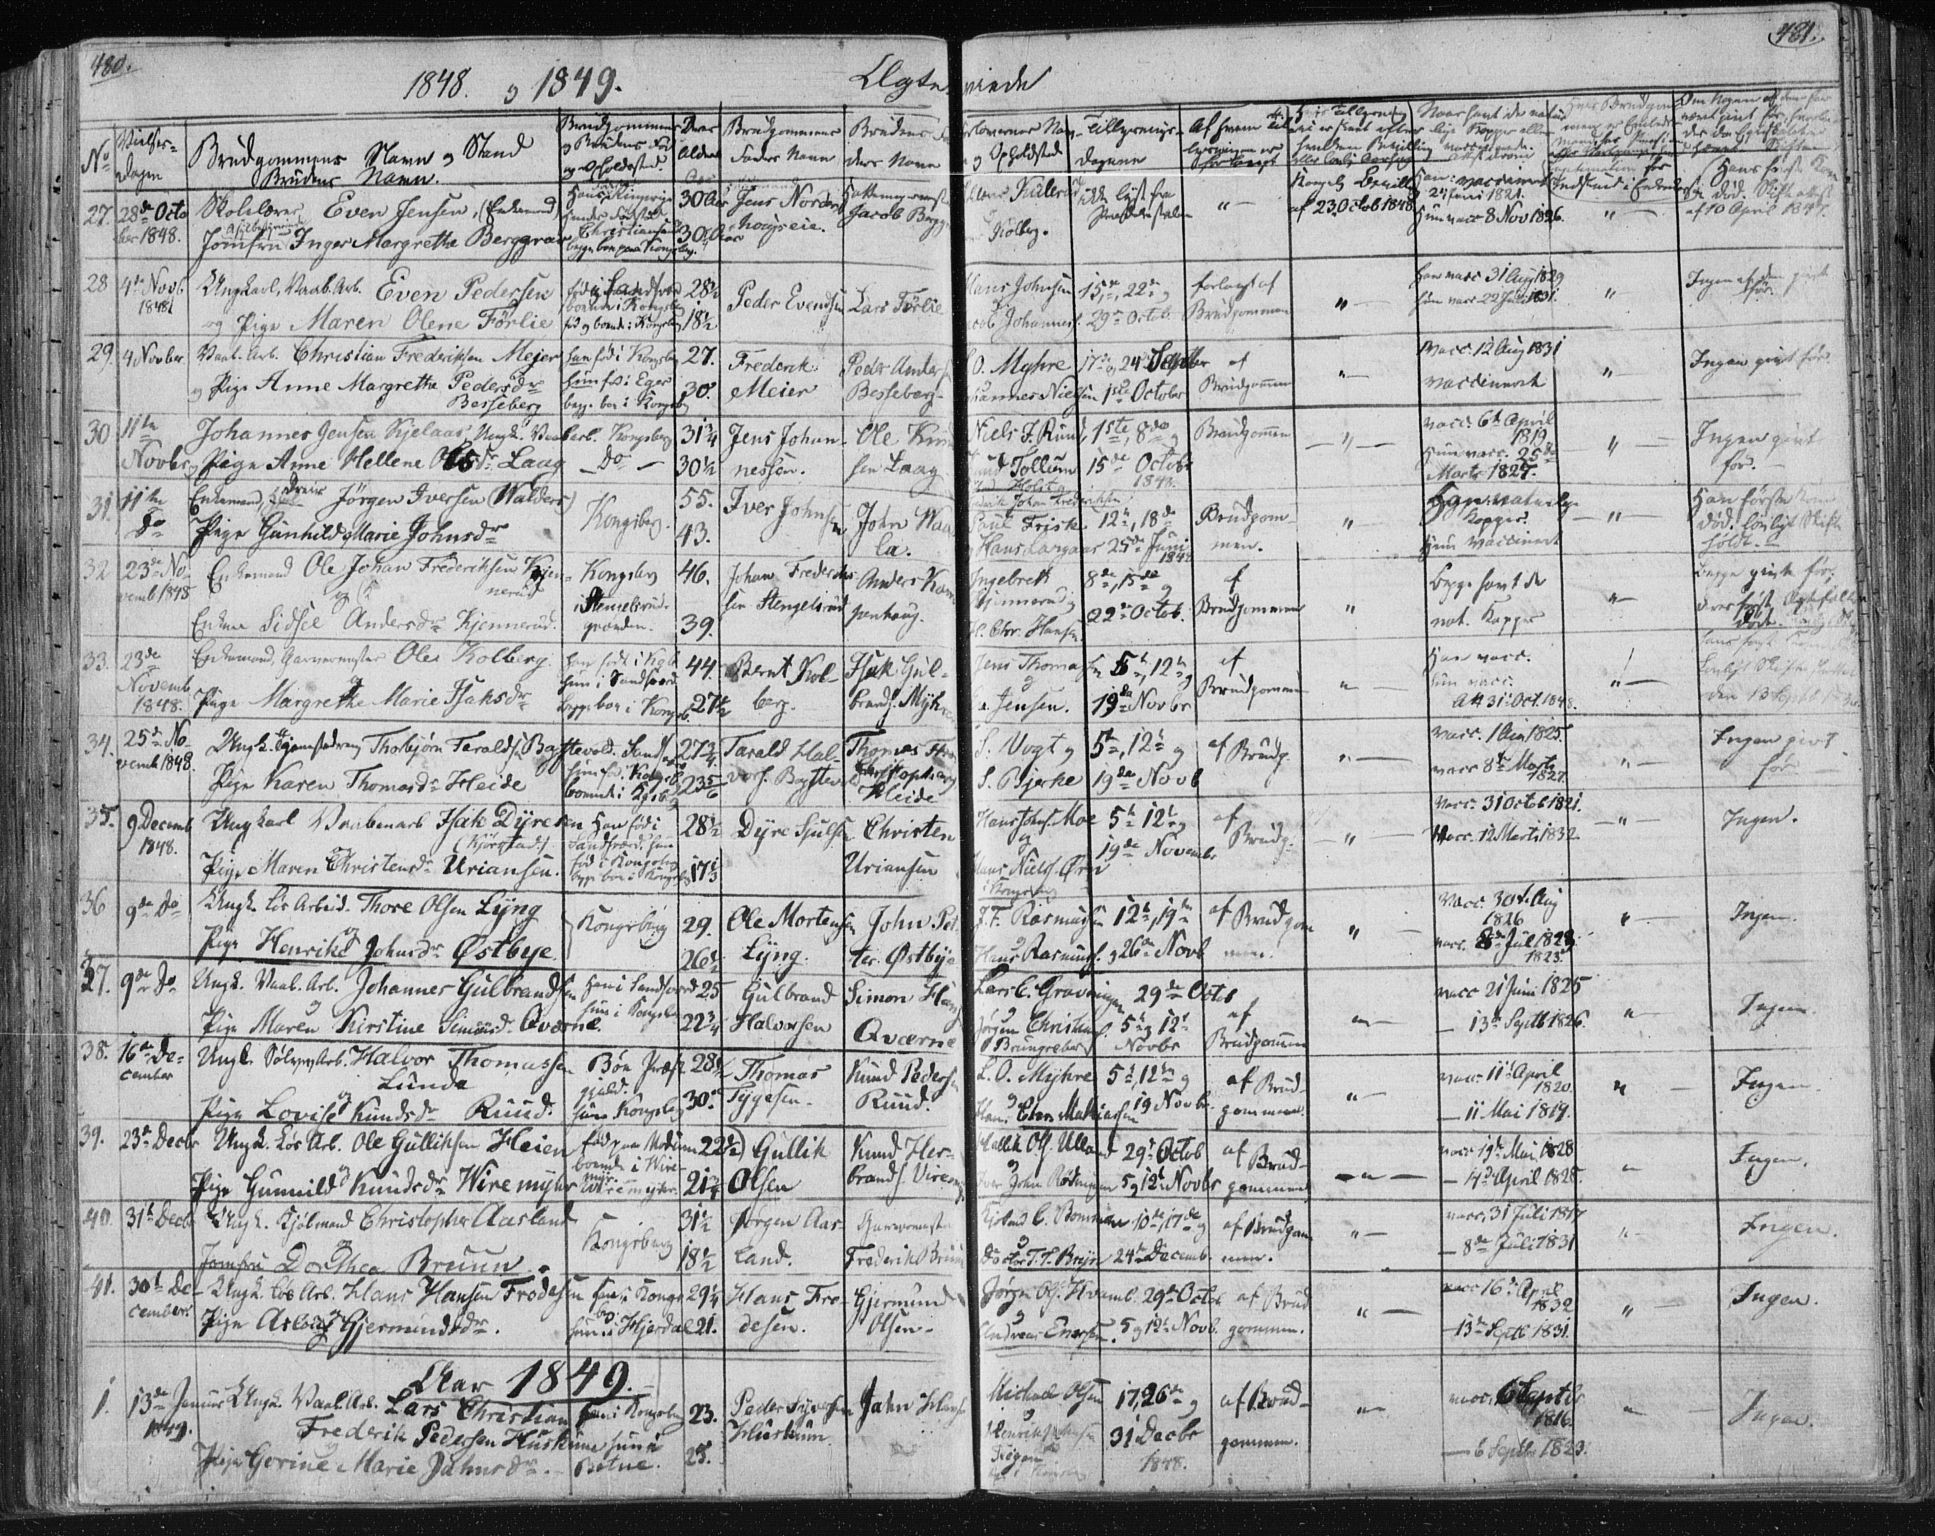 SAKO, Kongsberg kirkebøker, F/Fa/L0009: Parish register (official) no. I 9, 1839-1858, p. 480-481